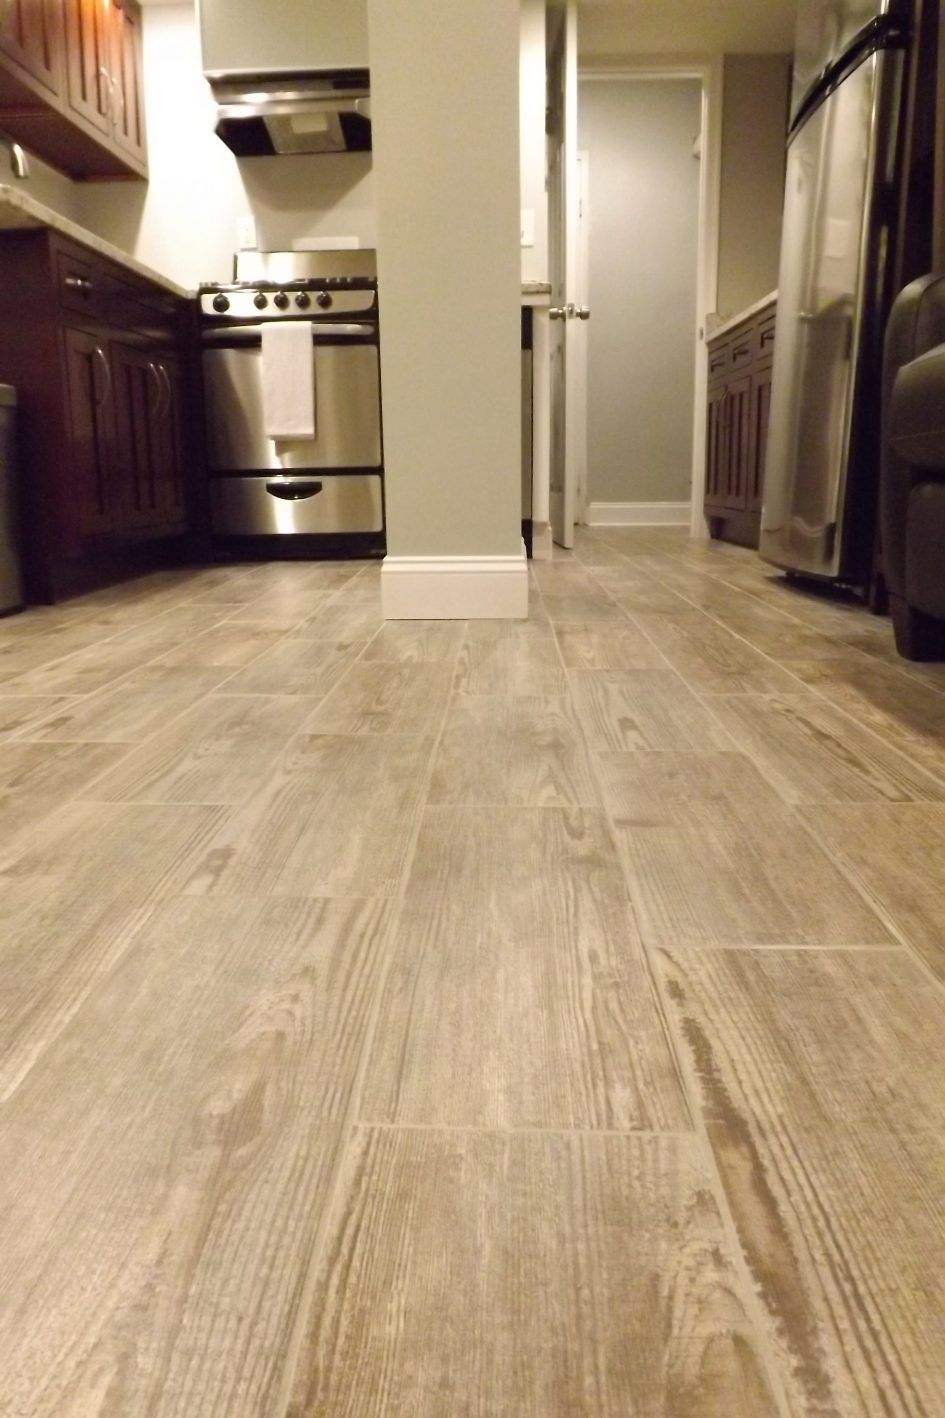 Image Result For Faveweis Trendy Hardwood Floor Tile Wood Look